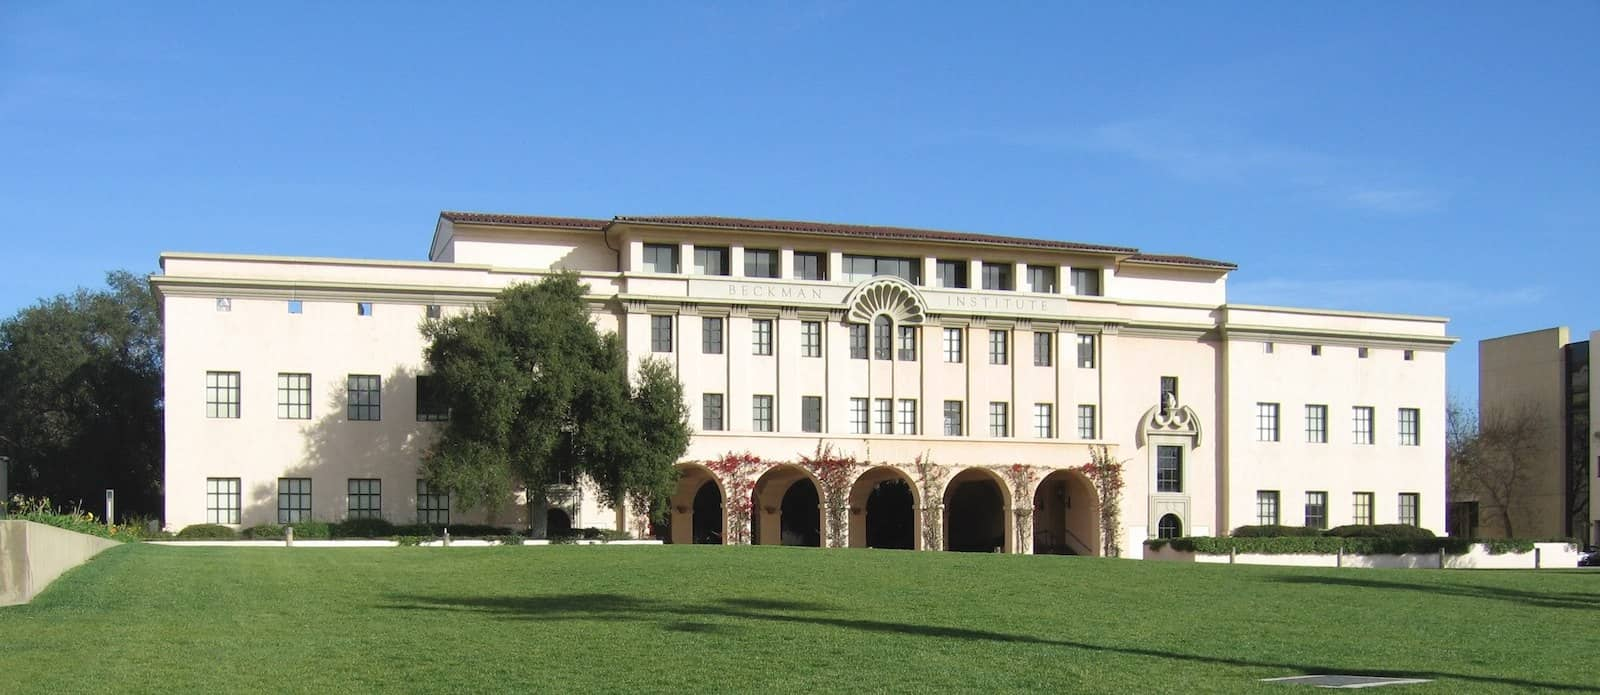 Laboratories of the Biological Sciences at Caltech